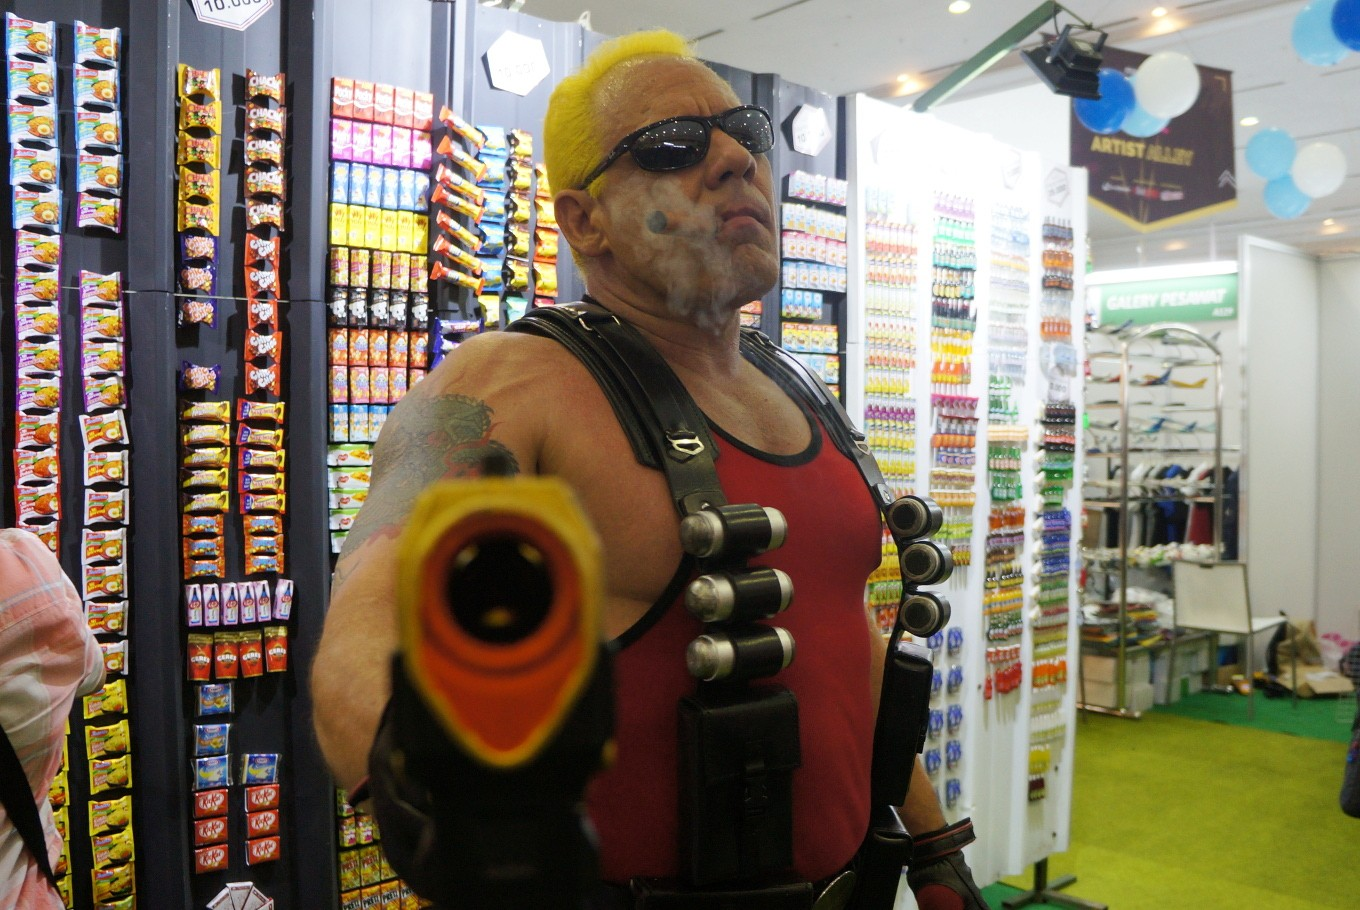 A cosplayer pulls out his gun while performing as 'Duke Nukem' from the video game series of the same name.